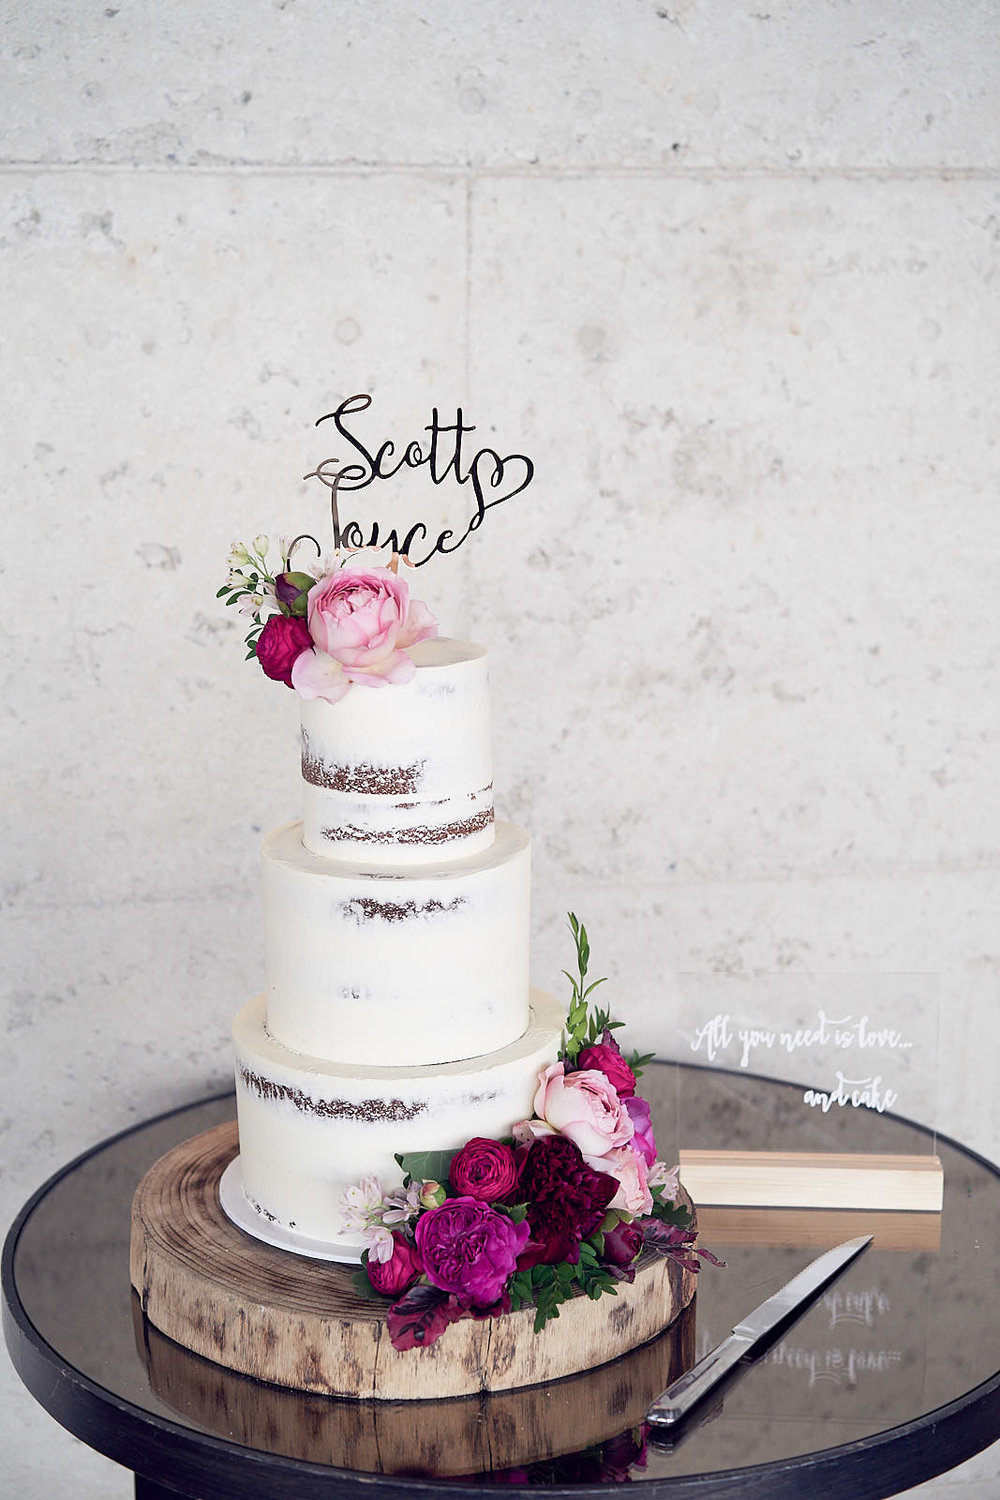 J & S Port Phillip Estate Wedding by Lost In Love Photography. #weddingcake